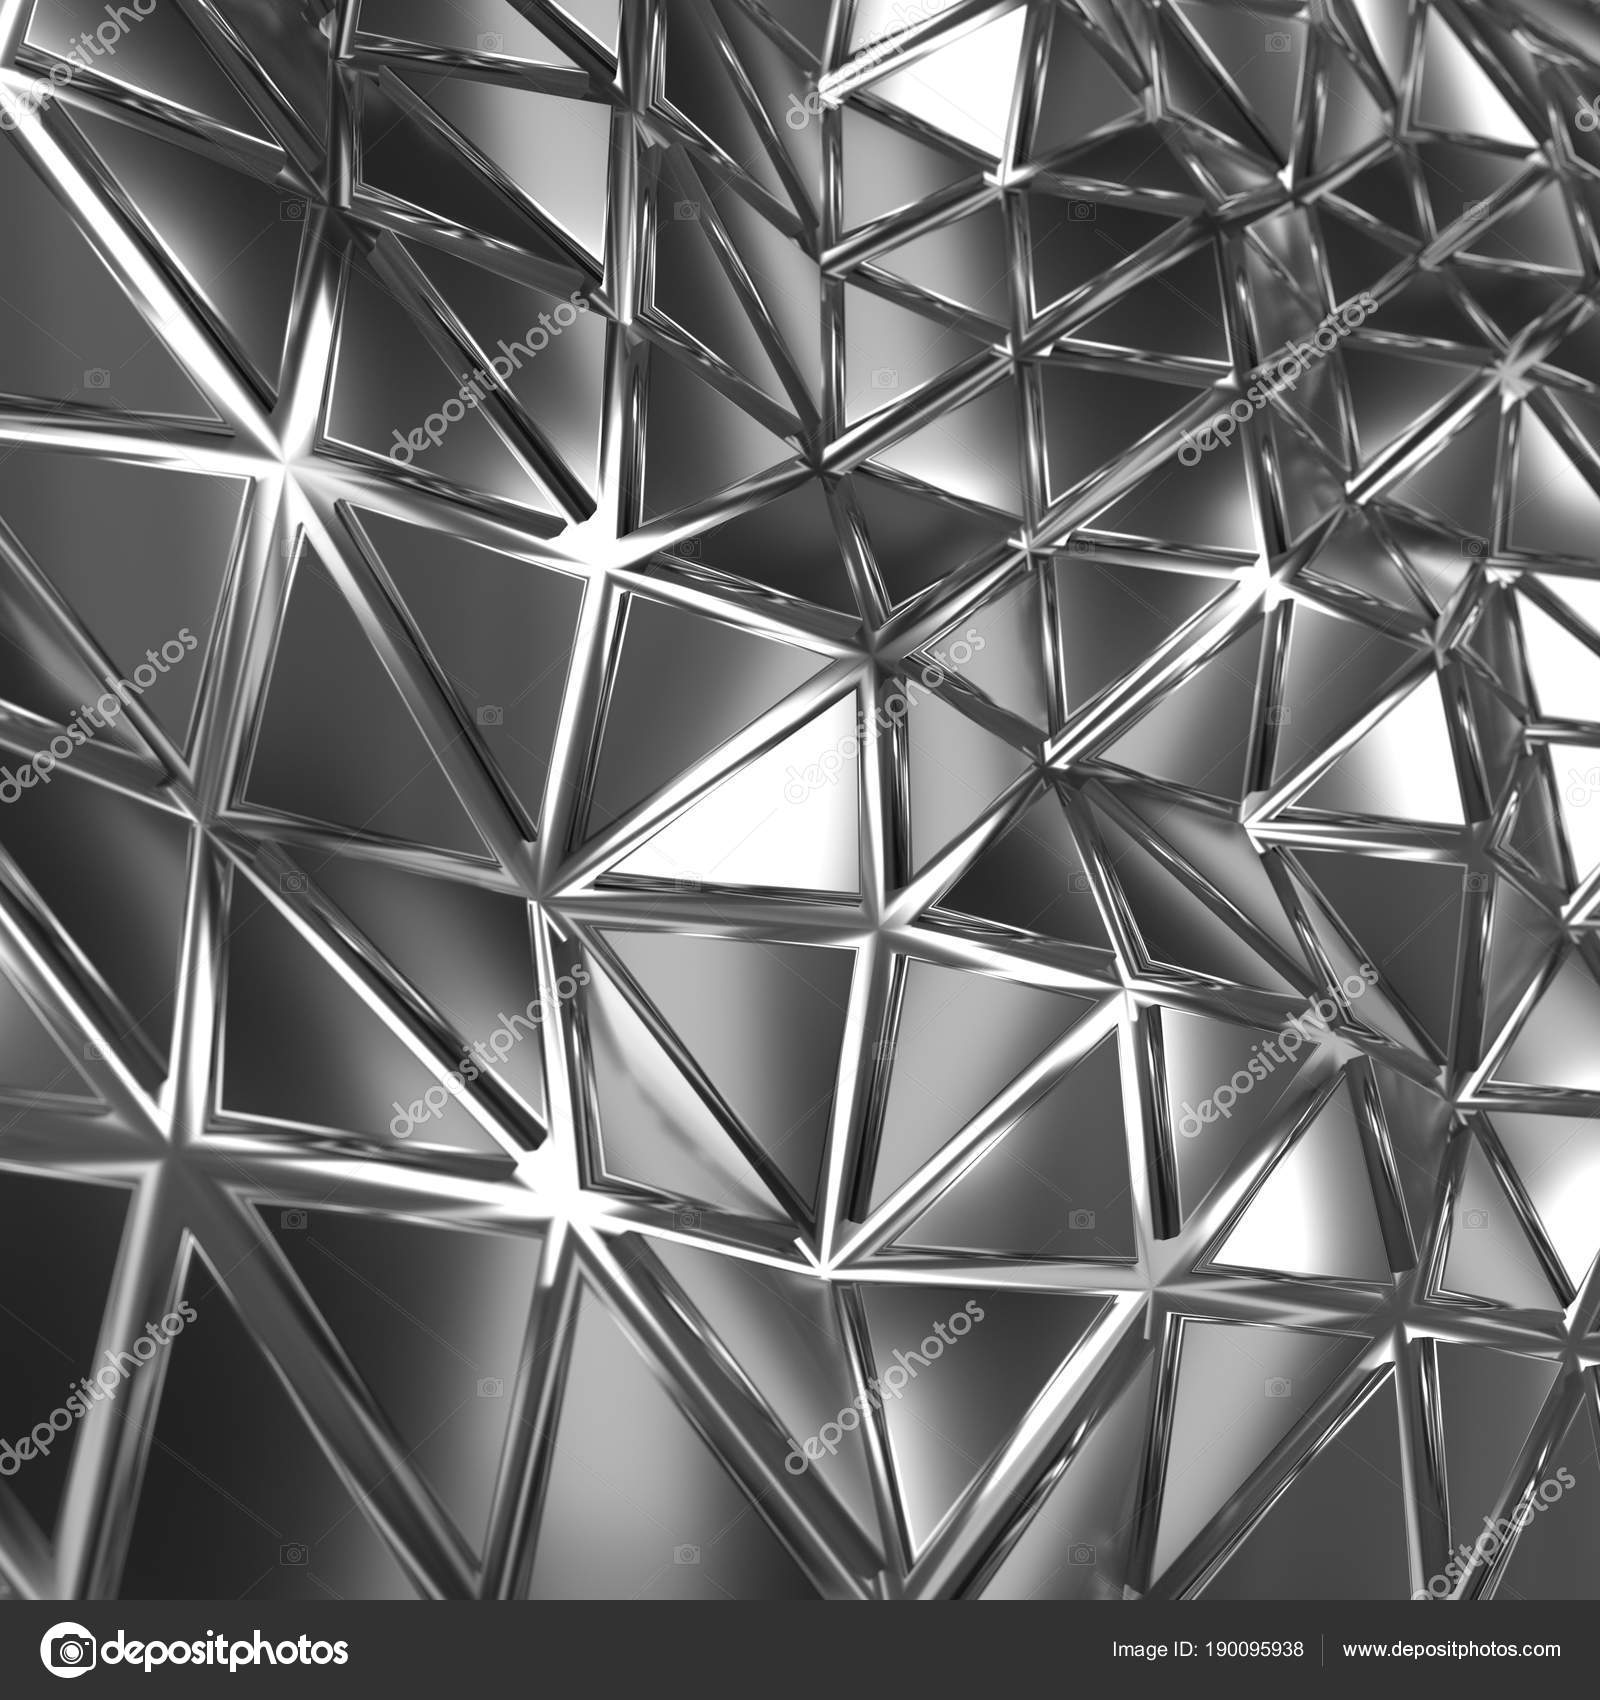 Abstract 3d render photo